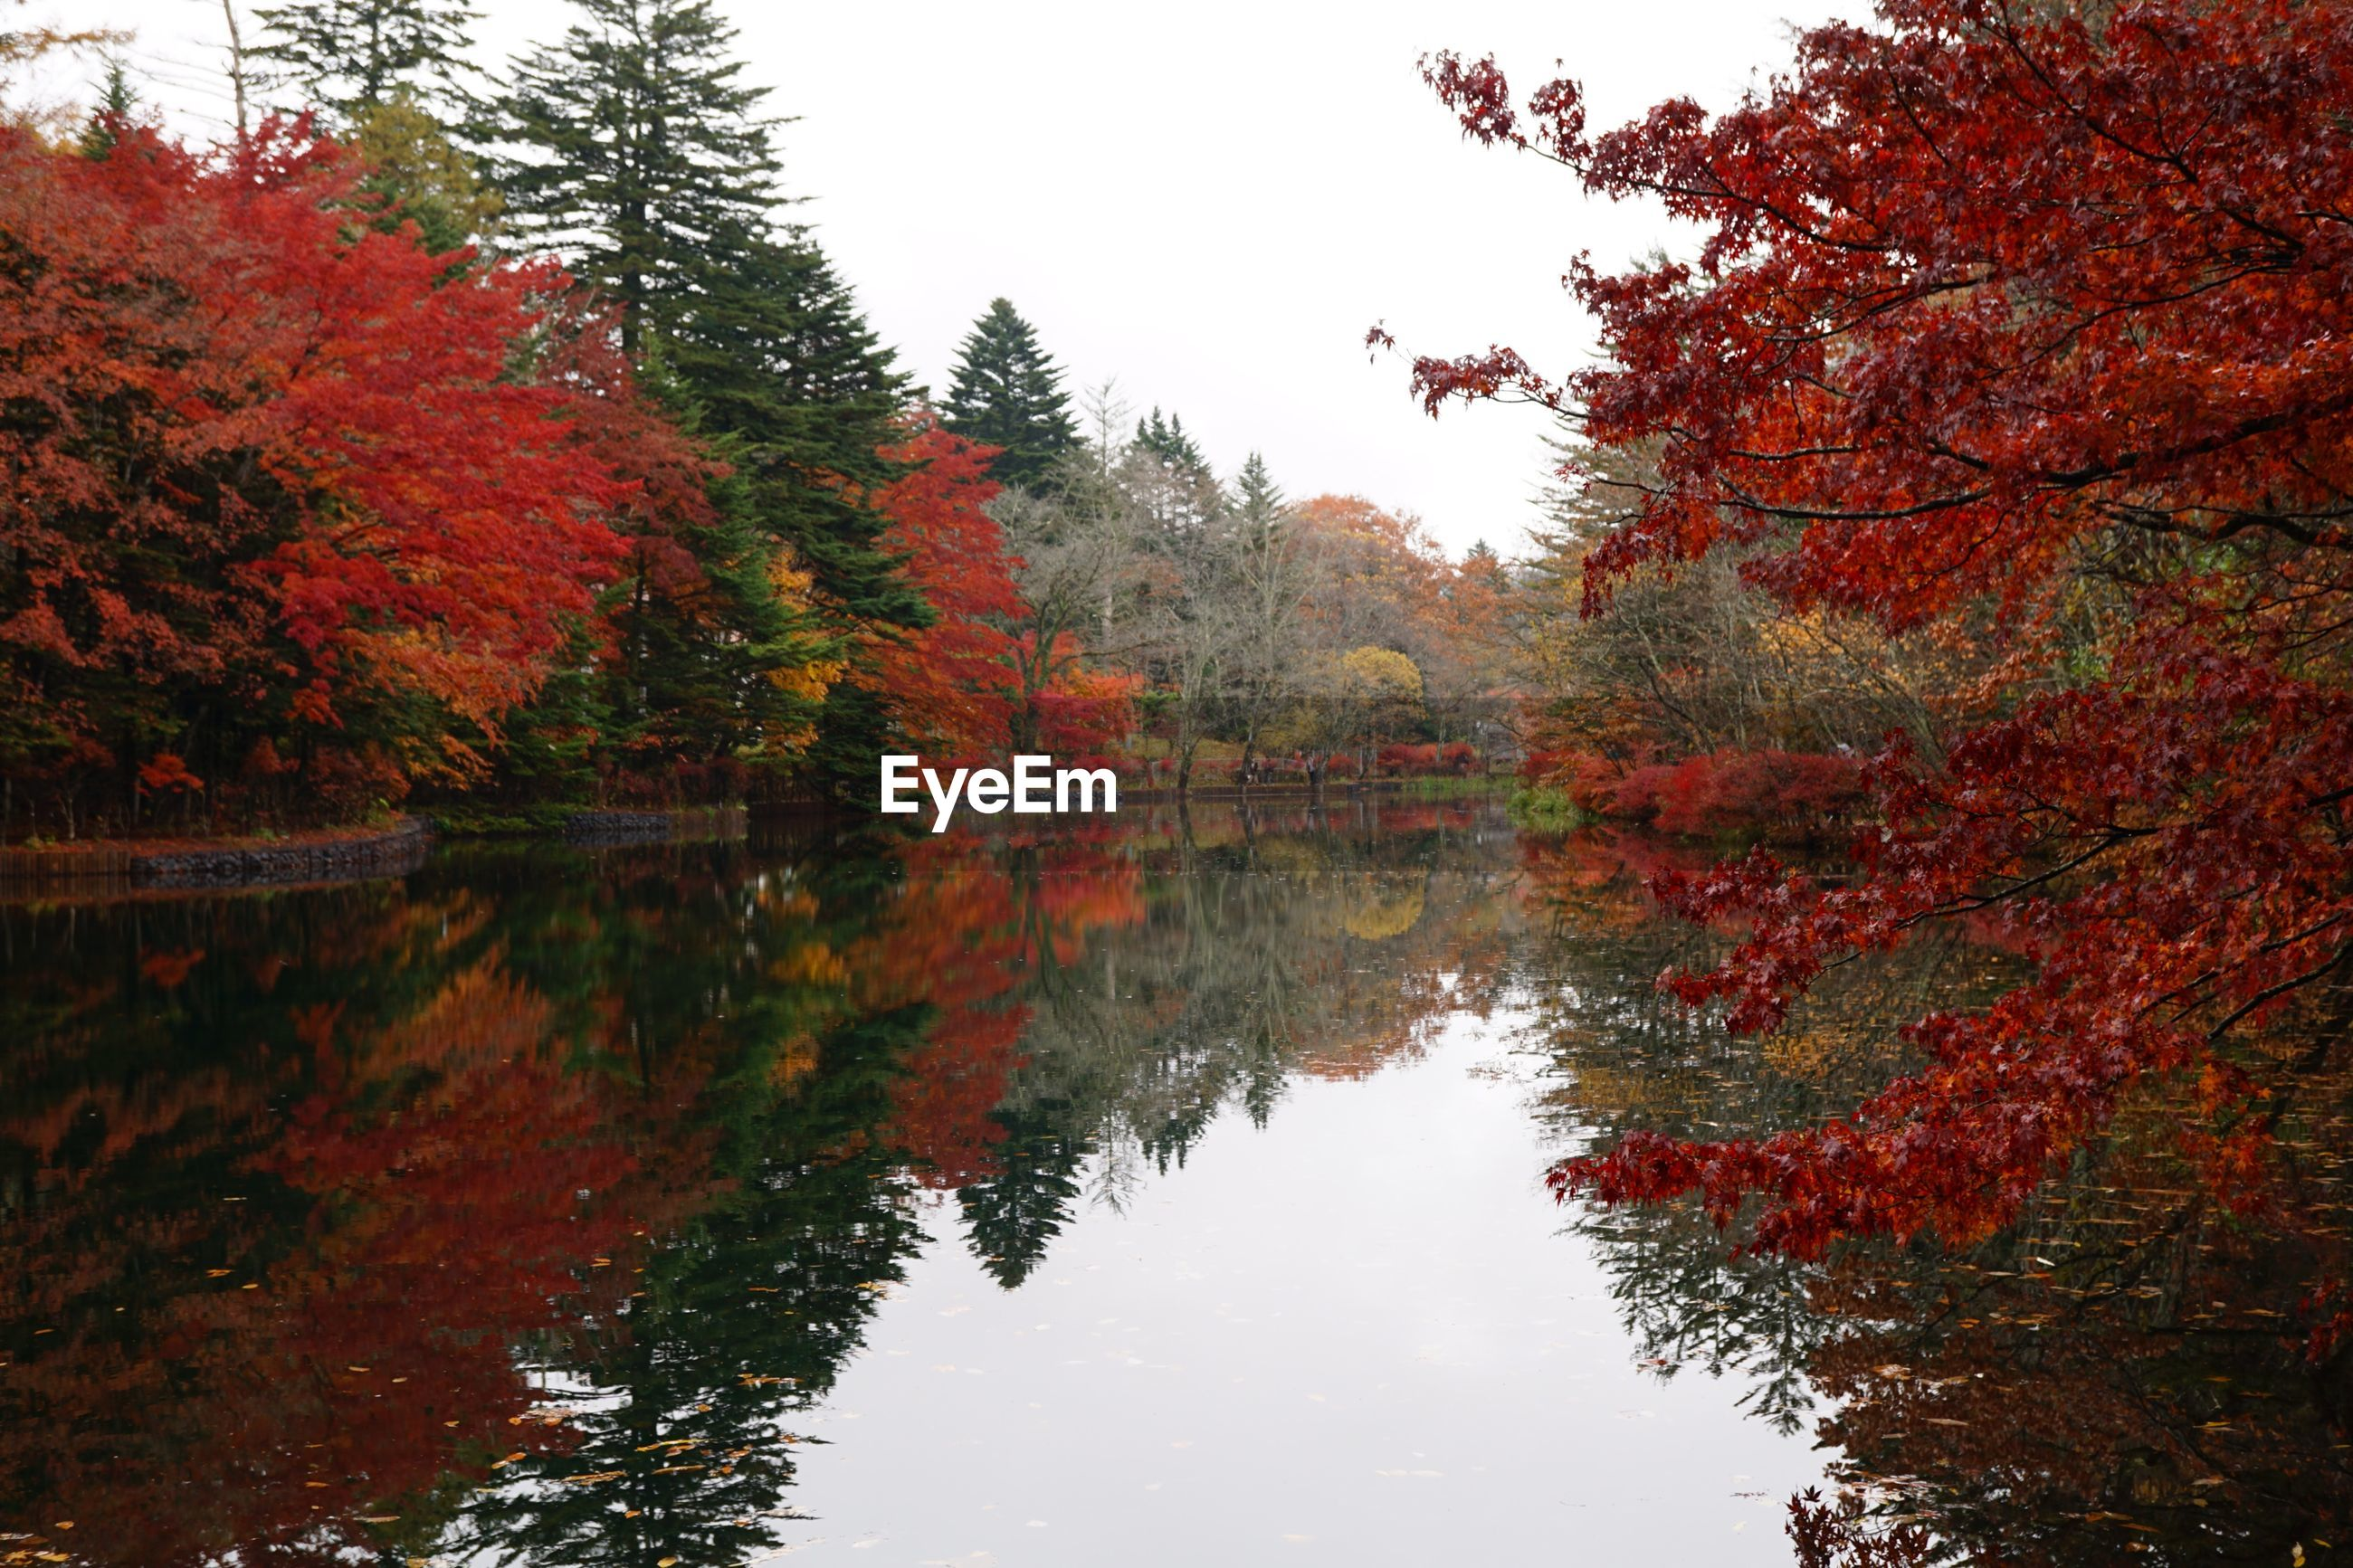 tree, reflection, plant, change, water, autumn, lake, tranquility, beauty in nature, nature, tranquil scene, no people, orange color, scenics - nature, growth, sky, waterfront, day, red, outdoors, fall, autumn collection